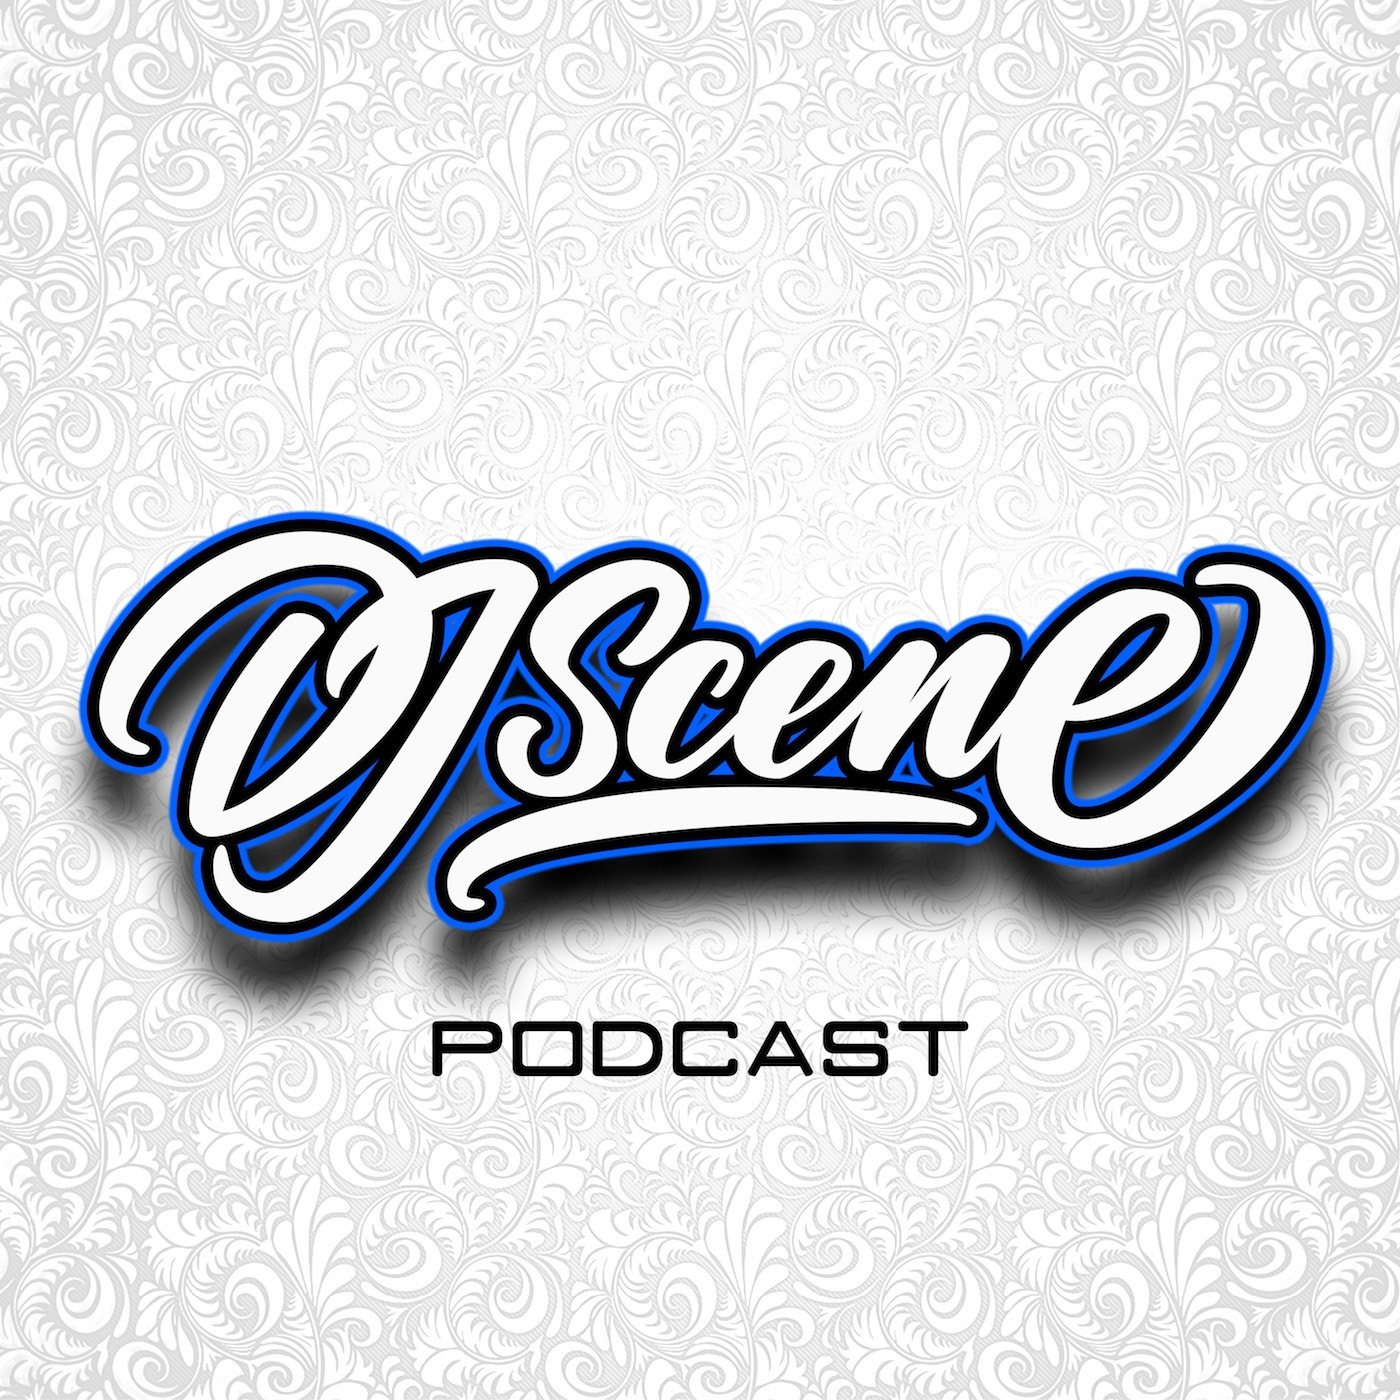 DJ Scene Podcast #152 (Live) (*uncensored) DJ SCENE podcast